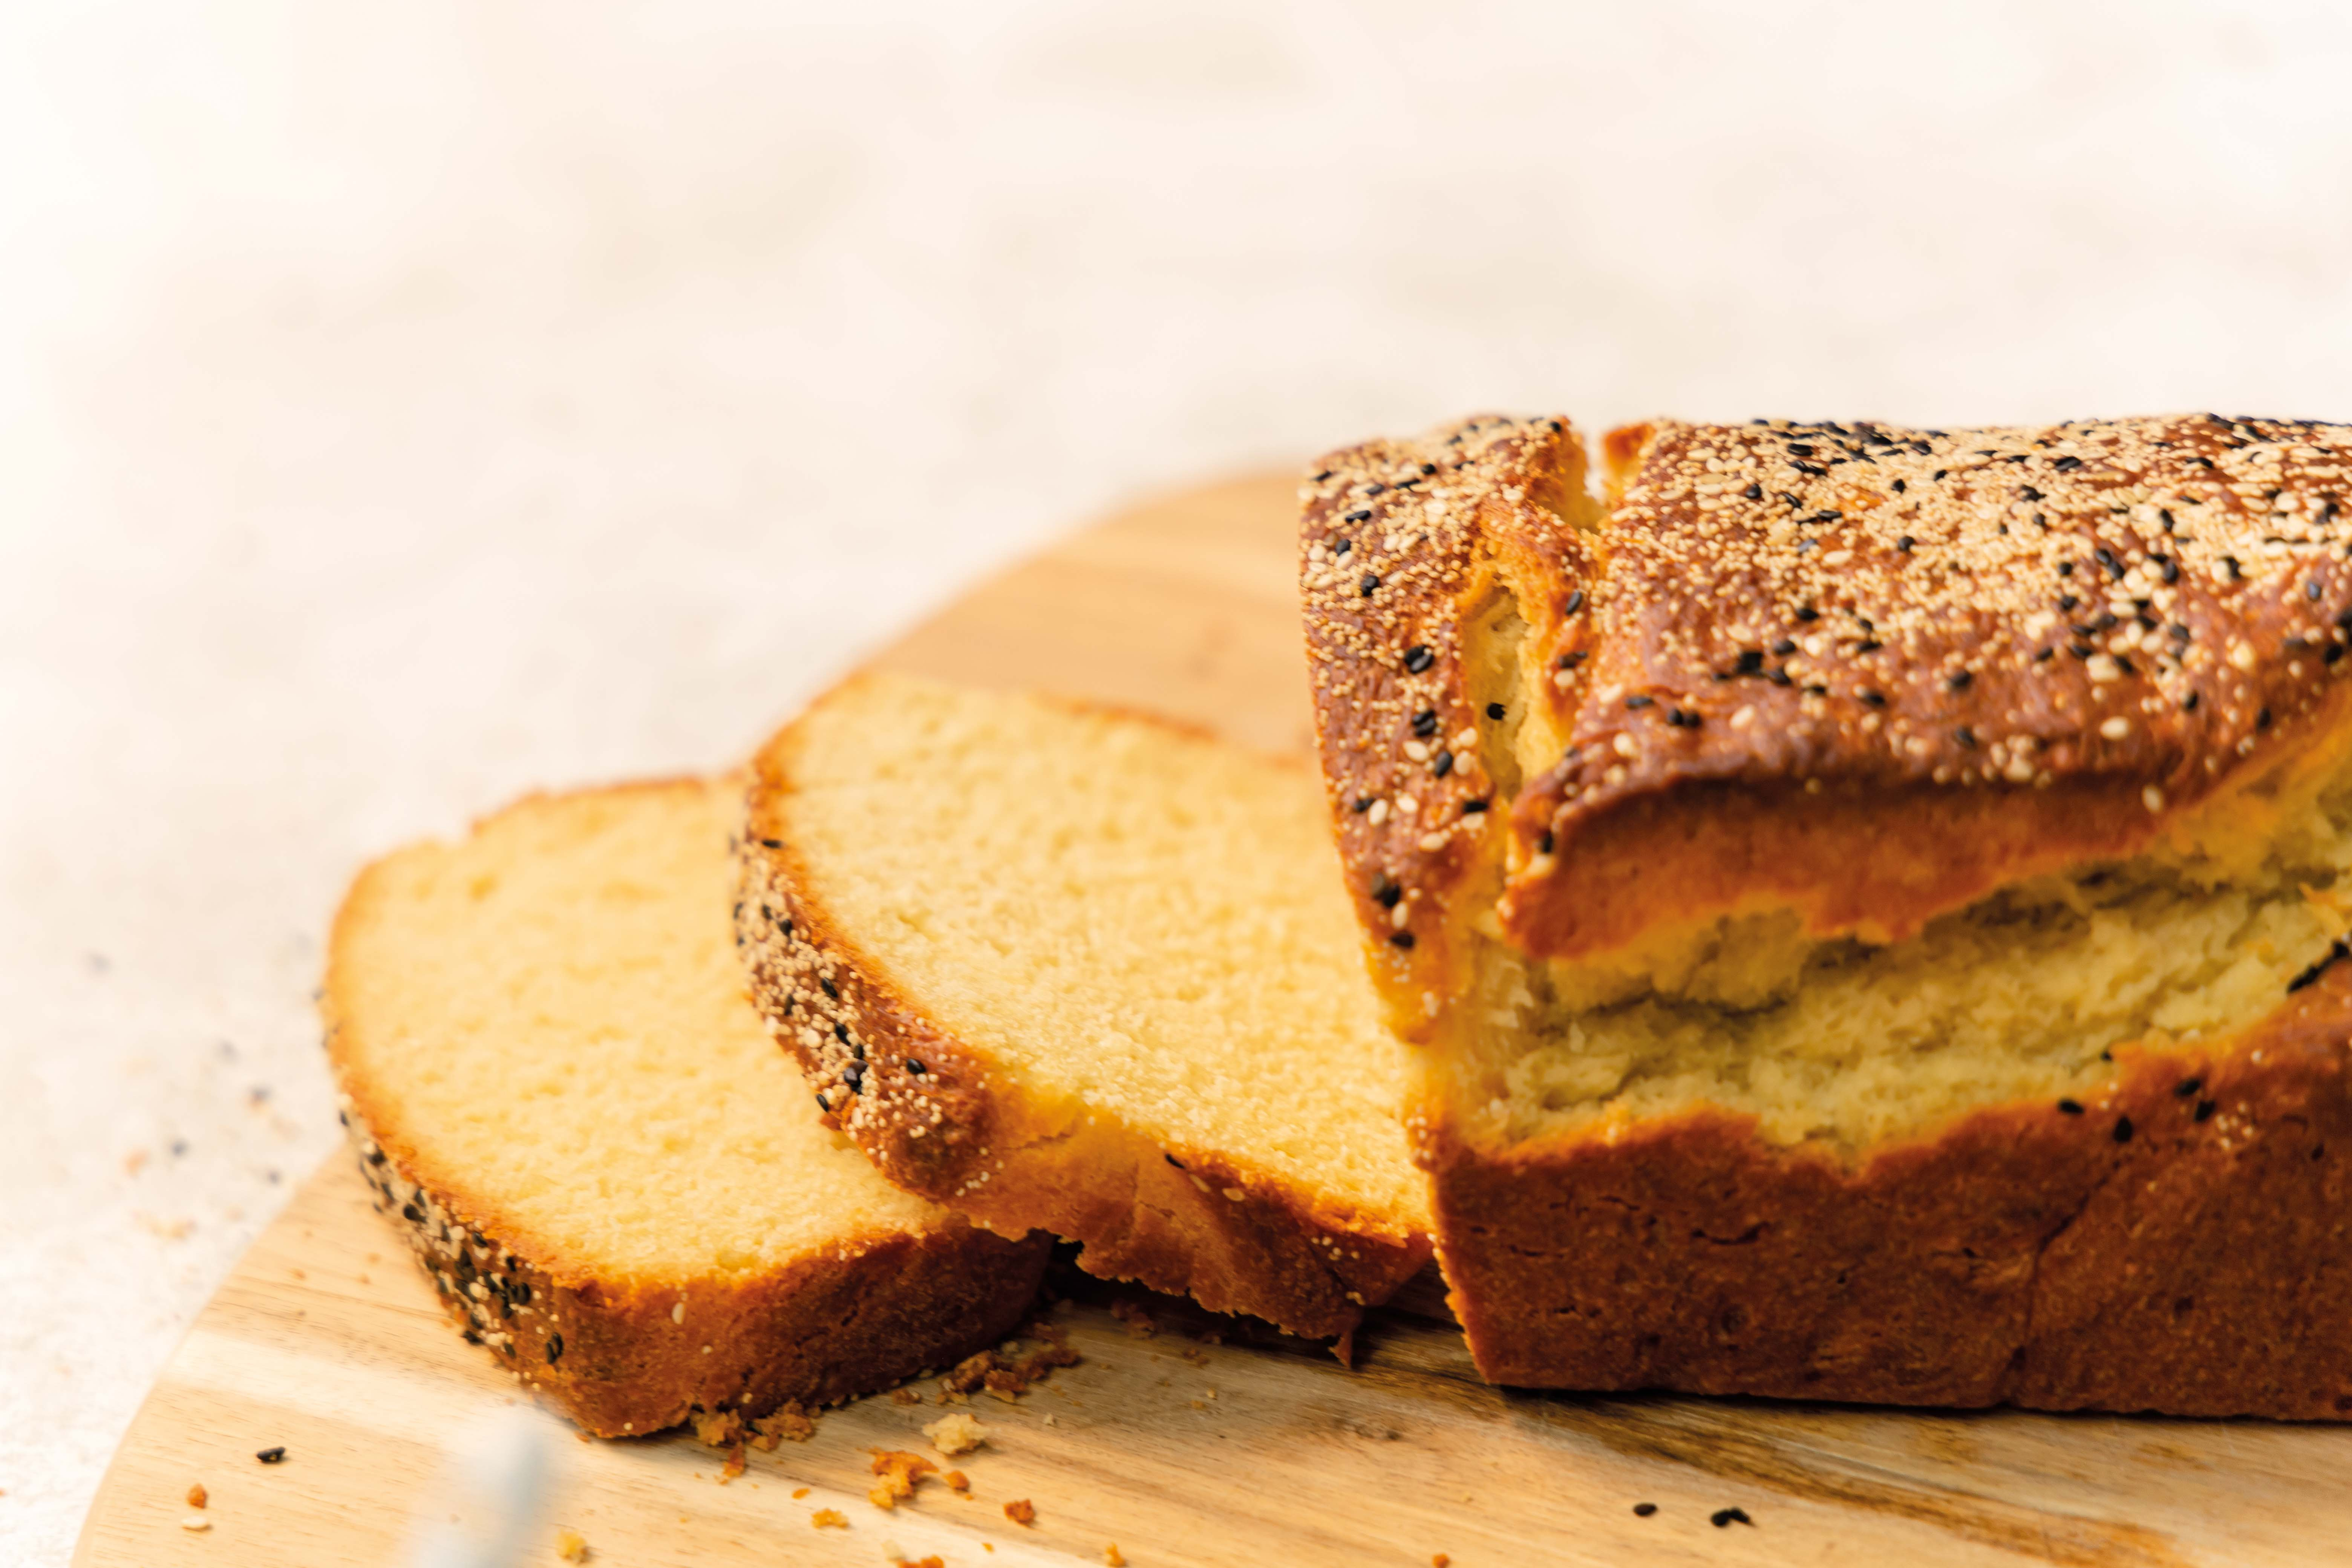 Frühstücksbrot mit Sesam-Mohn-Kruste / Breakfast bread with sesame and poddy seeds topping by https://babyrockmyday.com/fruehstuecksbrot-mit-sesam-mohn-kruste/